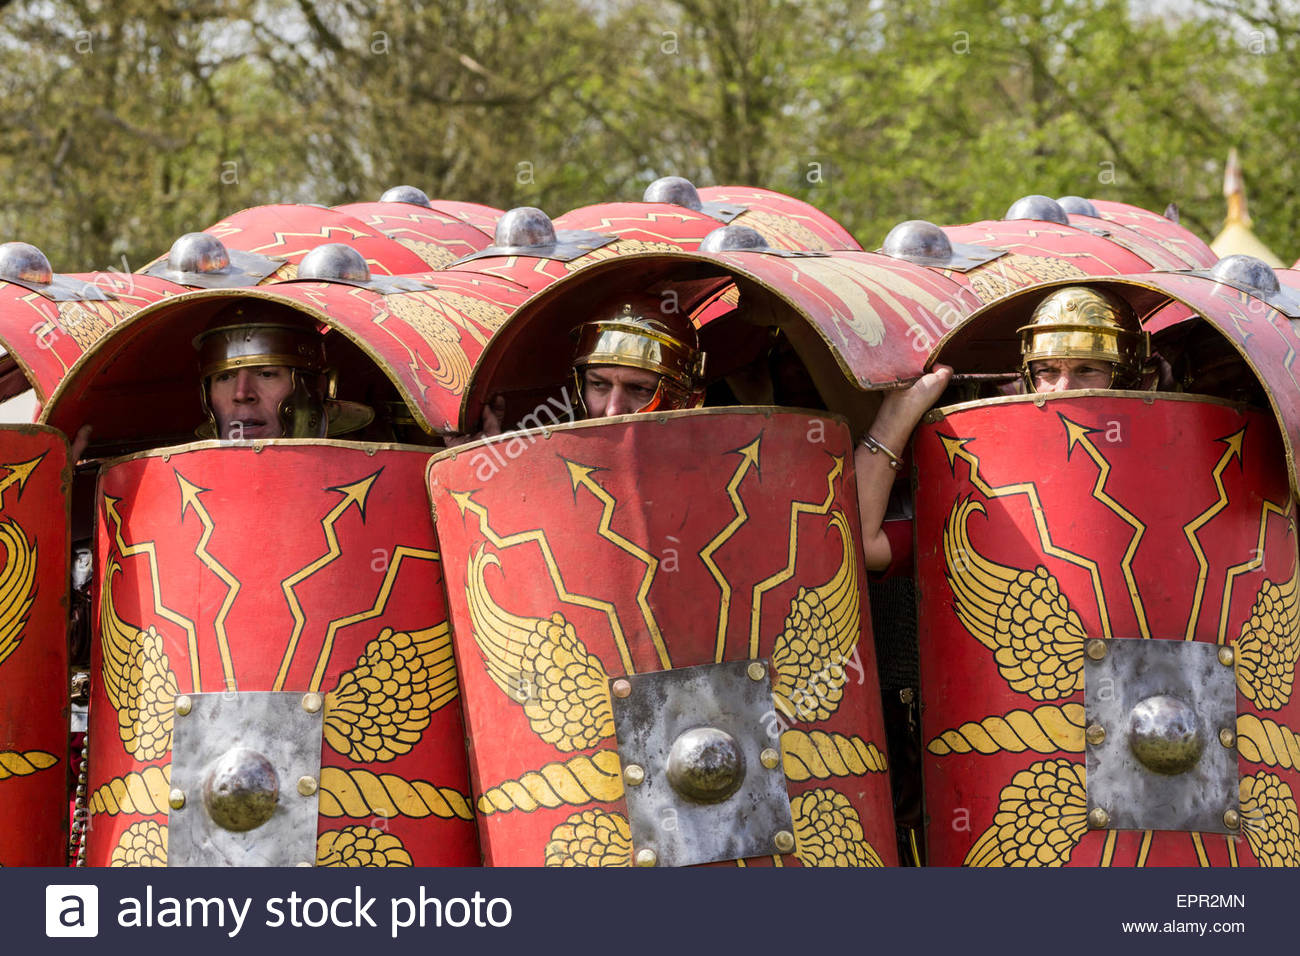 Roman Army Re-enactors demonstrating the tortoise battle formation. - Stock Image